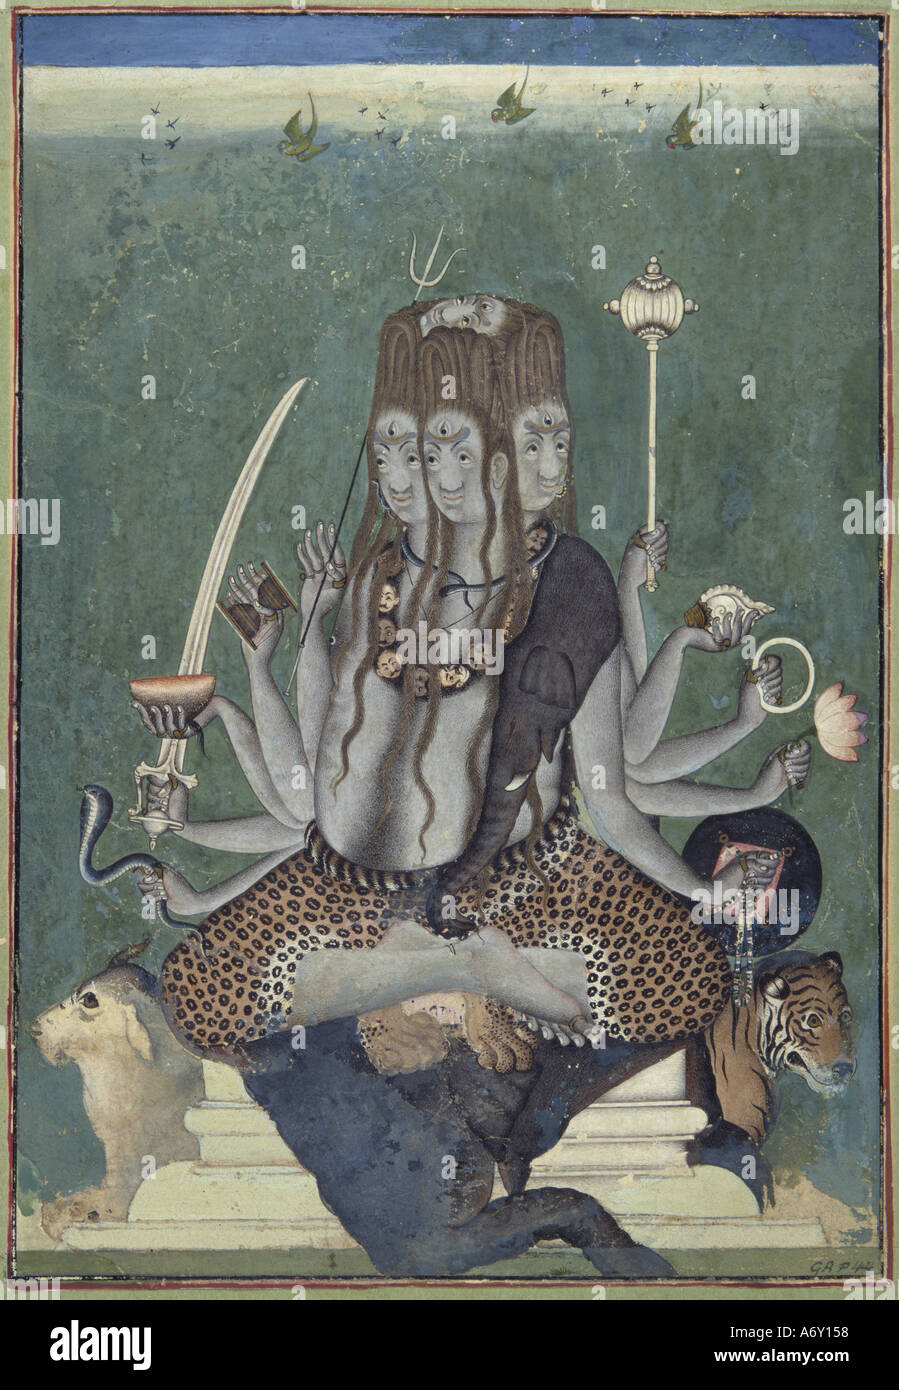 The Five Faced Shiva. India, mid 18th century. - Stock Image